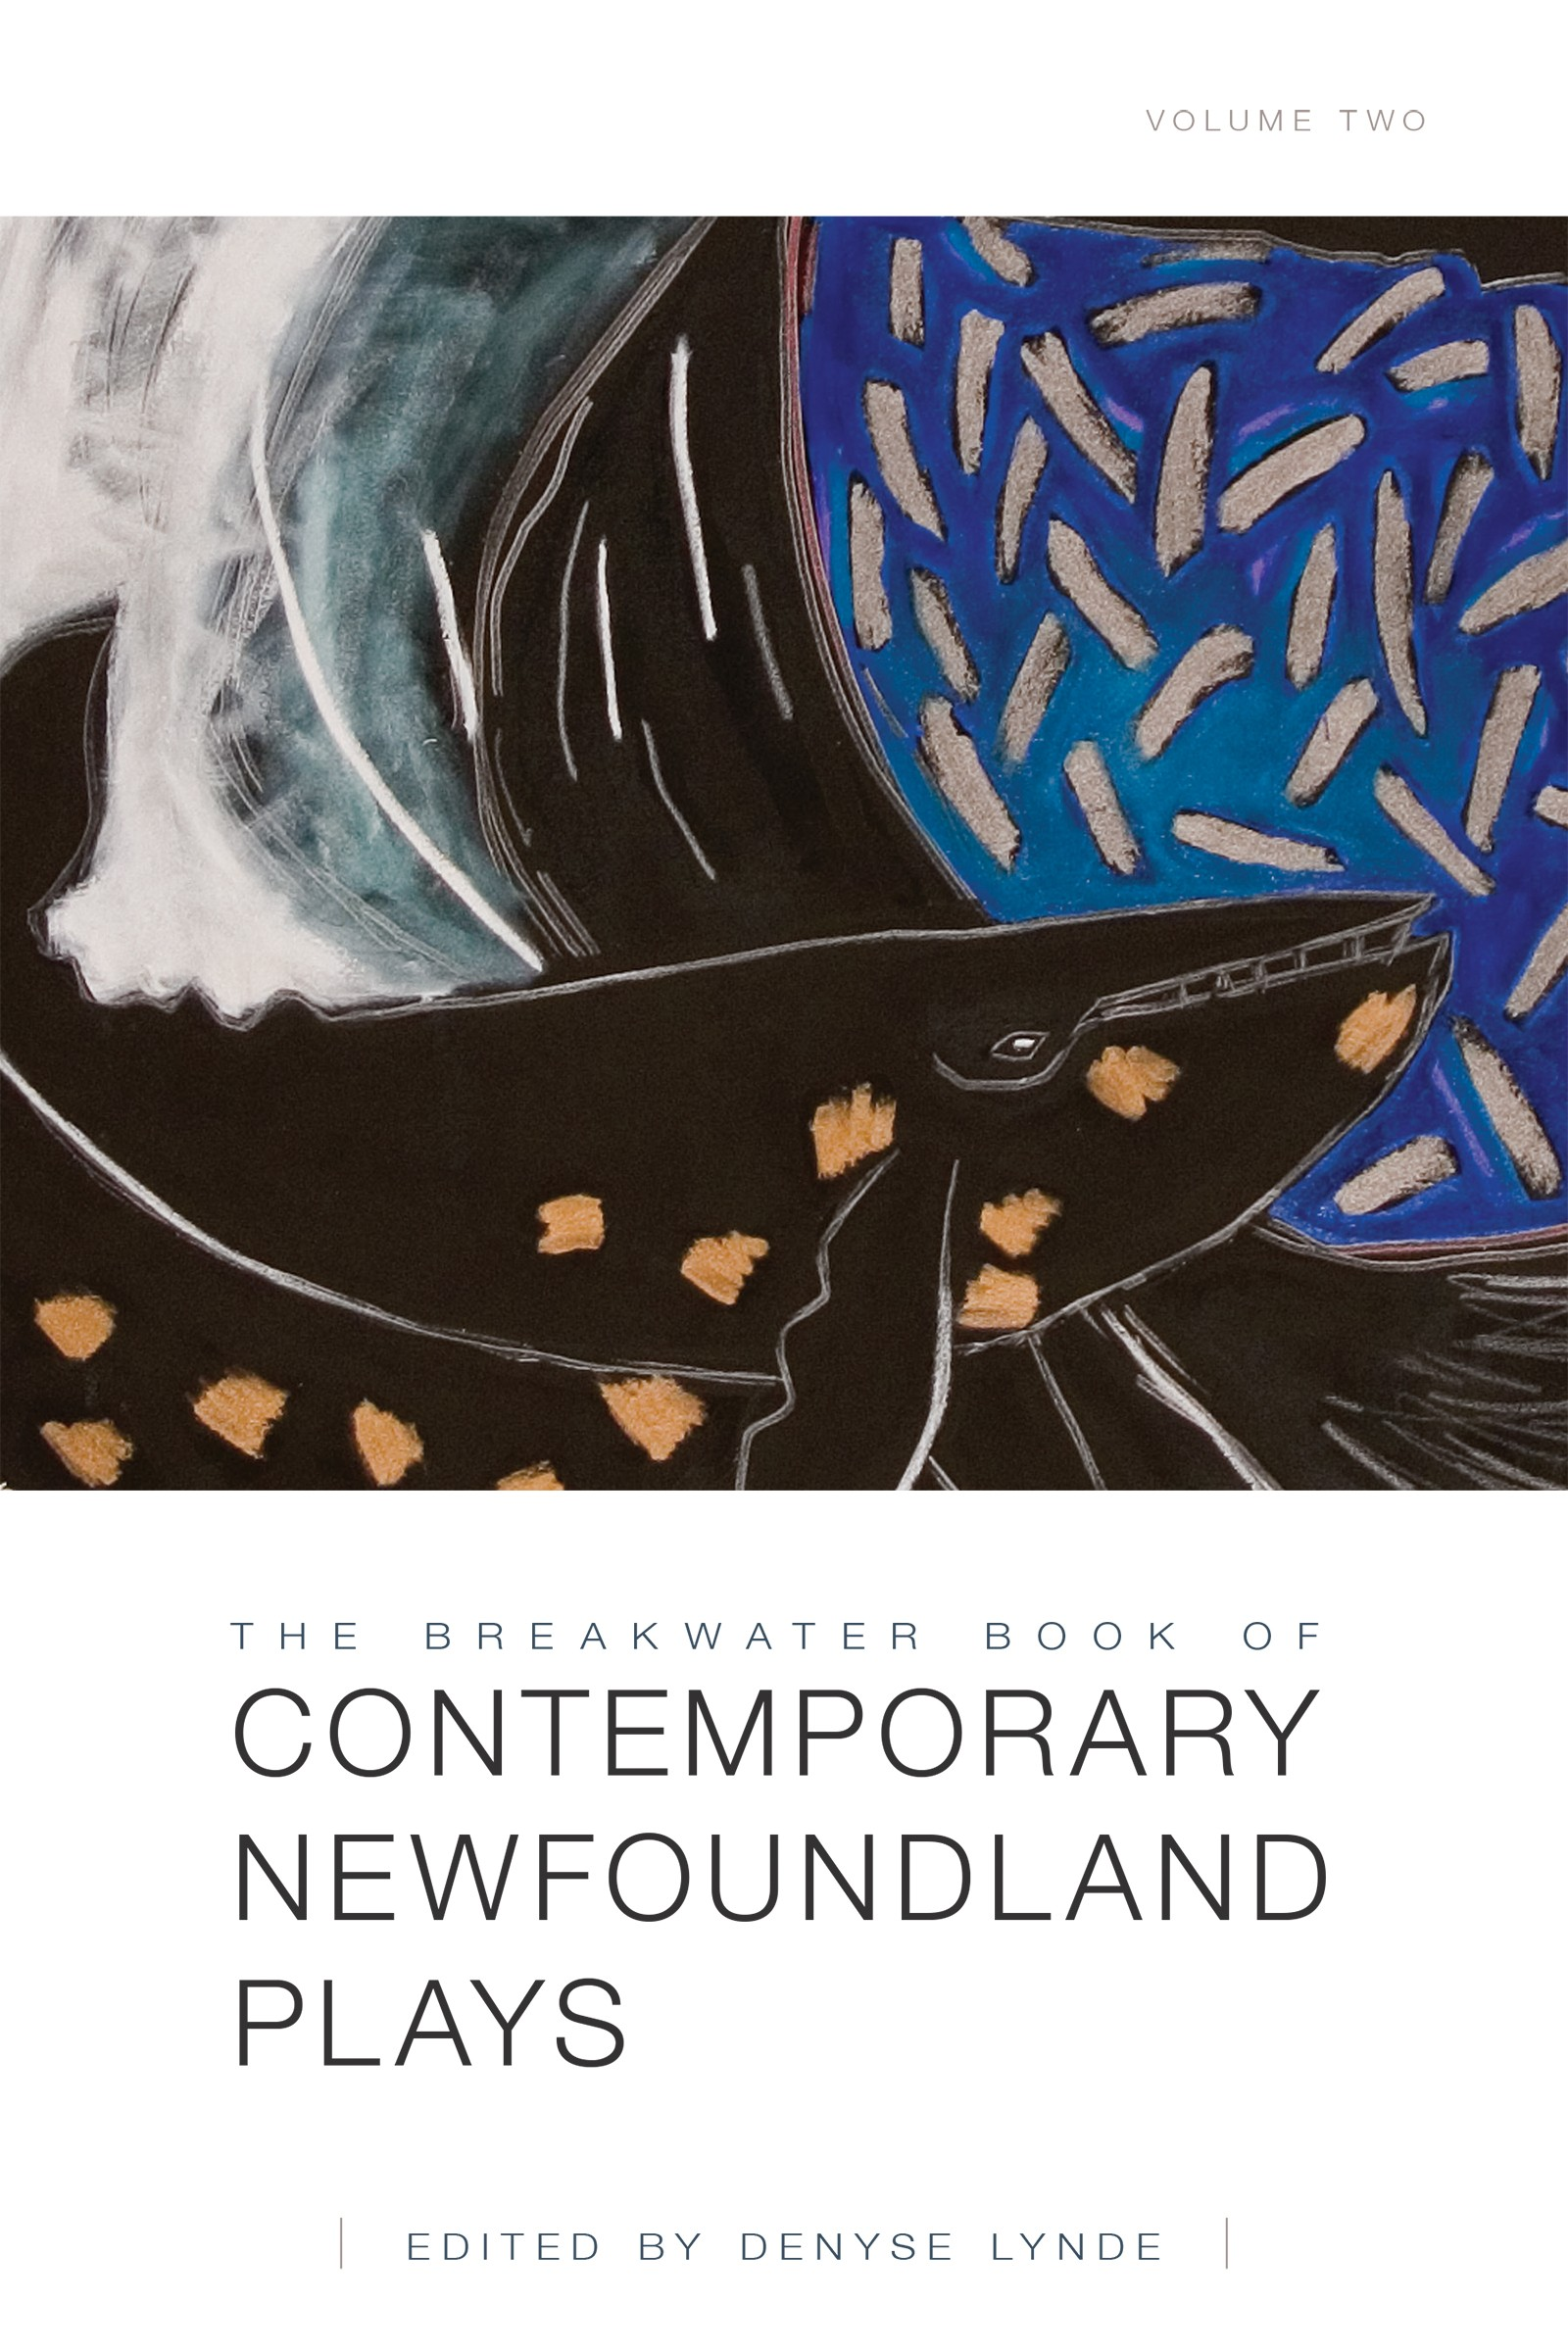 The Breakwater Book of Contemporary Newfoundland Plays Volume Two (print)